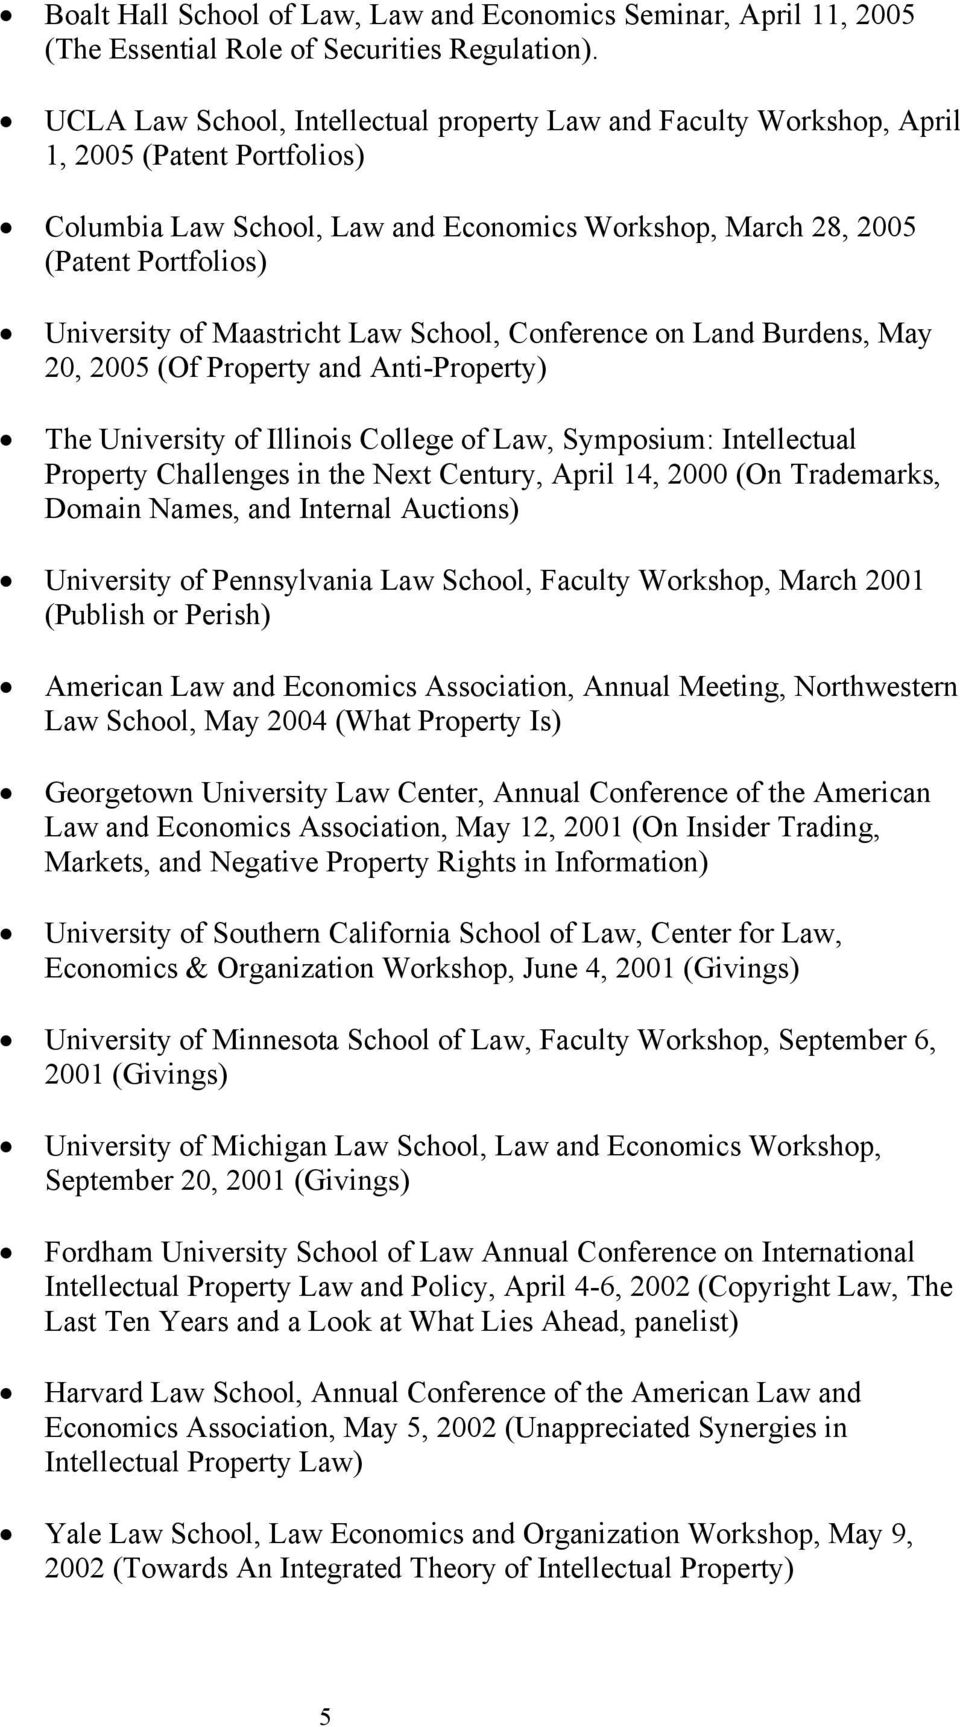 Maastricht Law School, Conference on Land Burdens, May 20, 2005 (Of Property and Anti-Property) The University of Illinois College of Law, Symposium: Intellectual Property Challenges in the Next